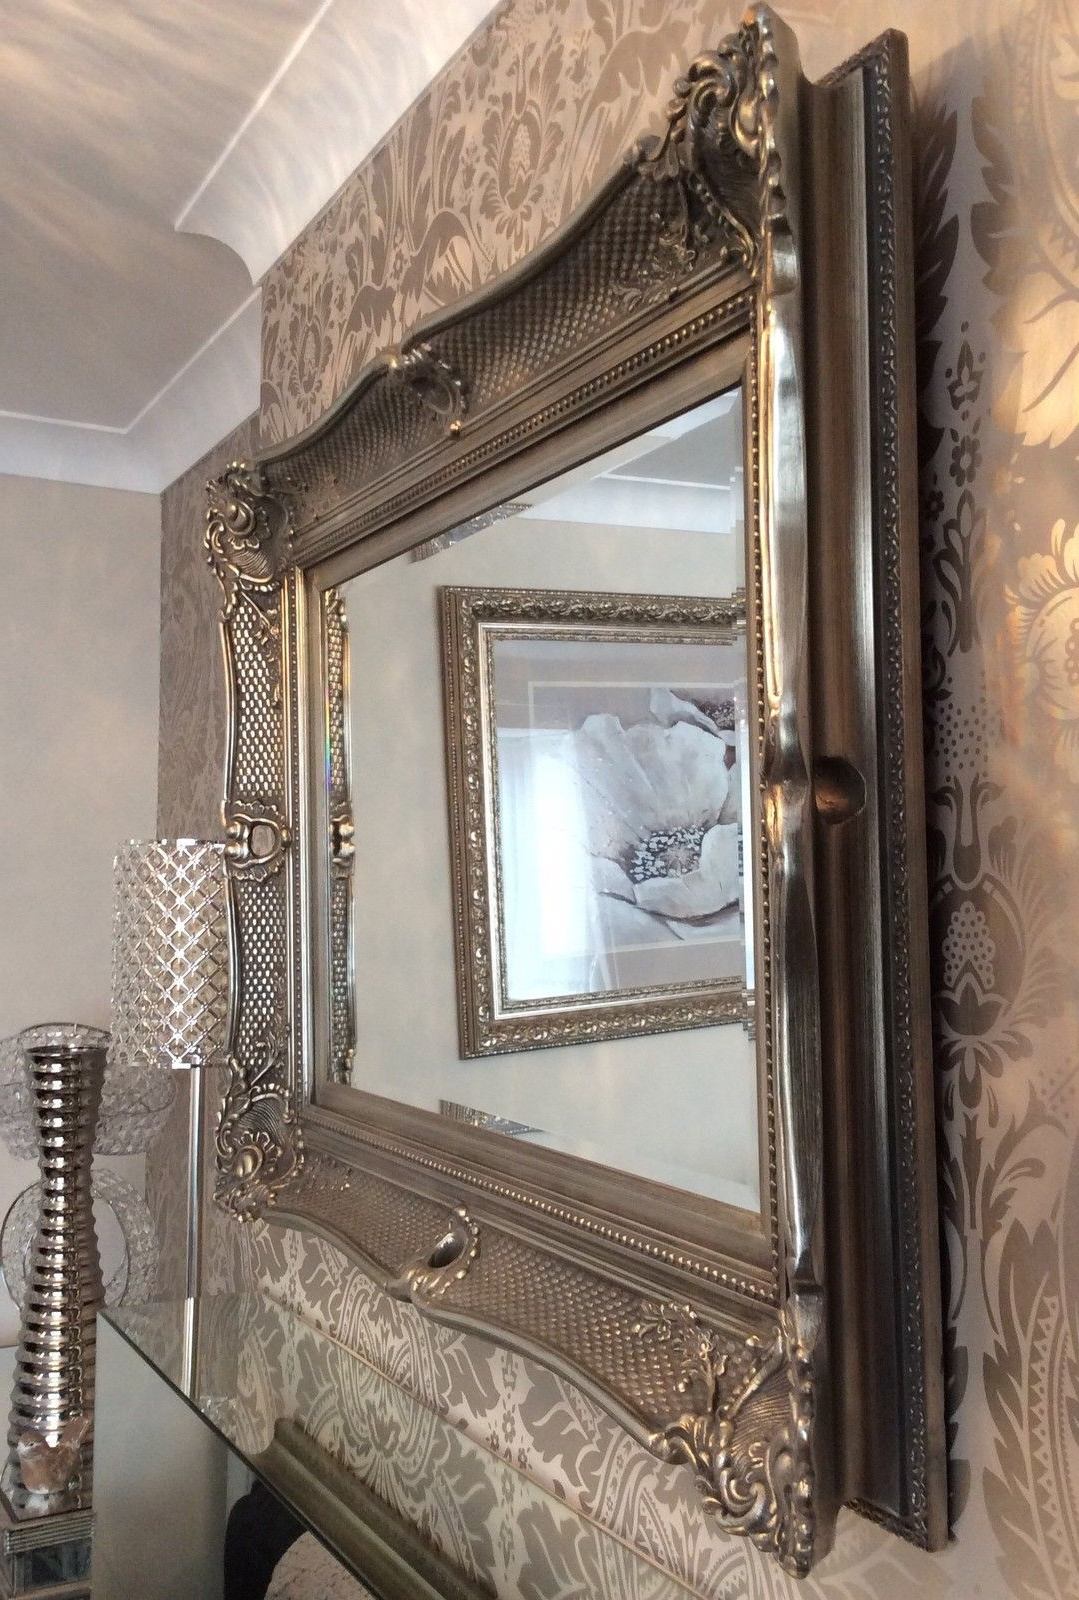 Recent Large Ornate Wall Mirrors Within Wonderful Ornate Fabulous Extra Large Wall Mirror – Range Of Sizes – Save ££S (Gallery 10 of 20)